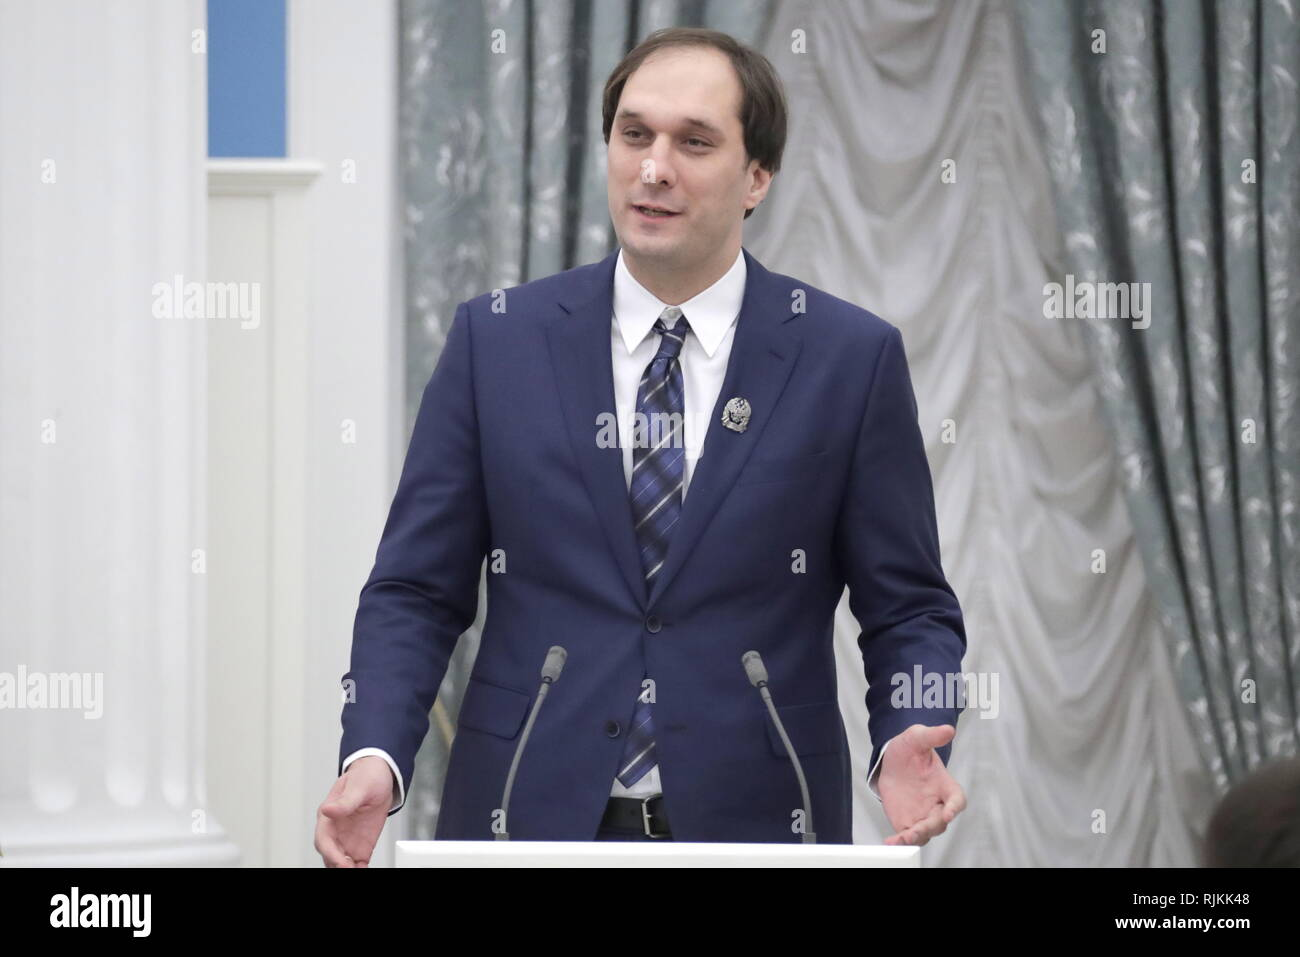 Moscow, Russia. 07th Feb, 2019. MOSCOW, RUSSIA - FEBRUARY 7, 2019: Ivan Oseledets, an associate professor at the Skolkovo Institute of Science and Technology, a laureate of the Presidential Prize in science and innovation for young scientists, speaks during an award ceremony at Moscow's Kremlin. Mikhail Metzel/TASS Credit: ITAR-TASS News Agency/Alamy Live News - Stock Image